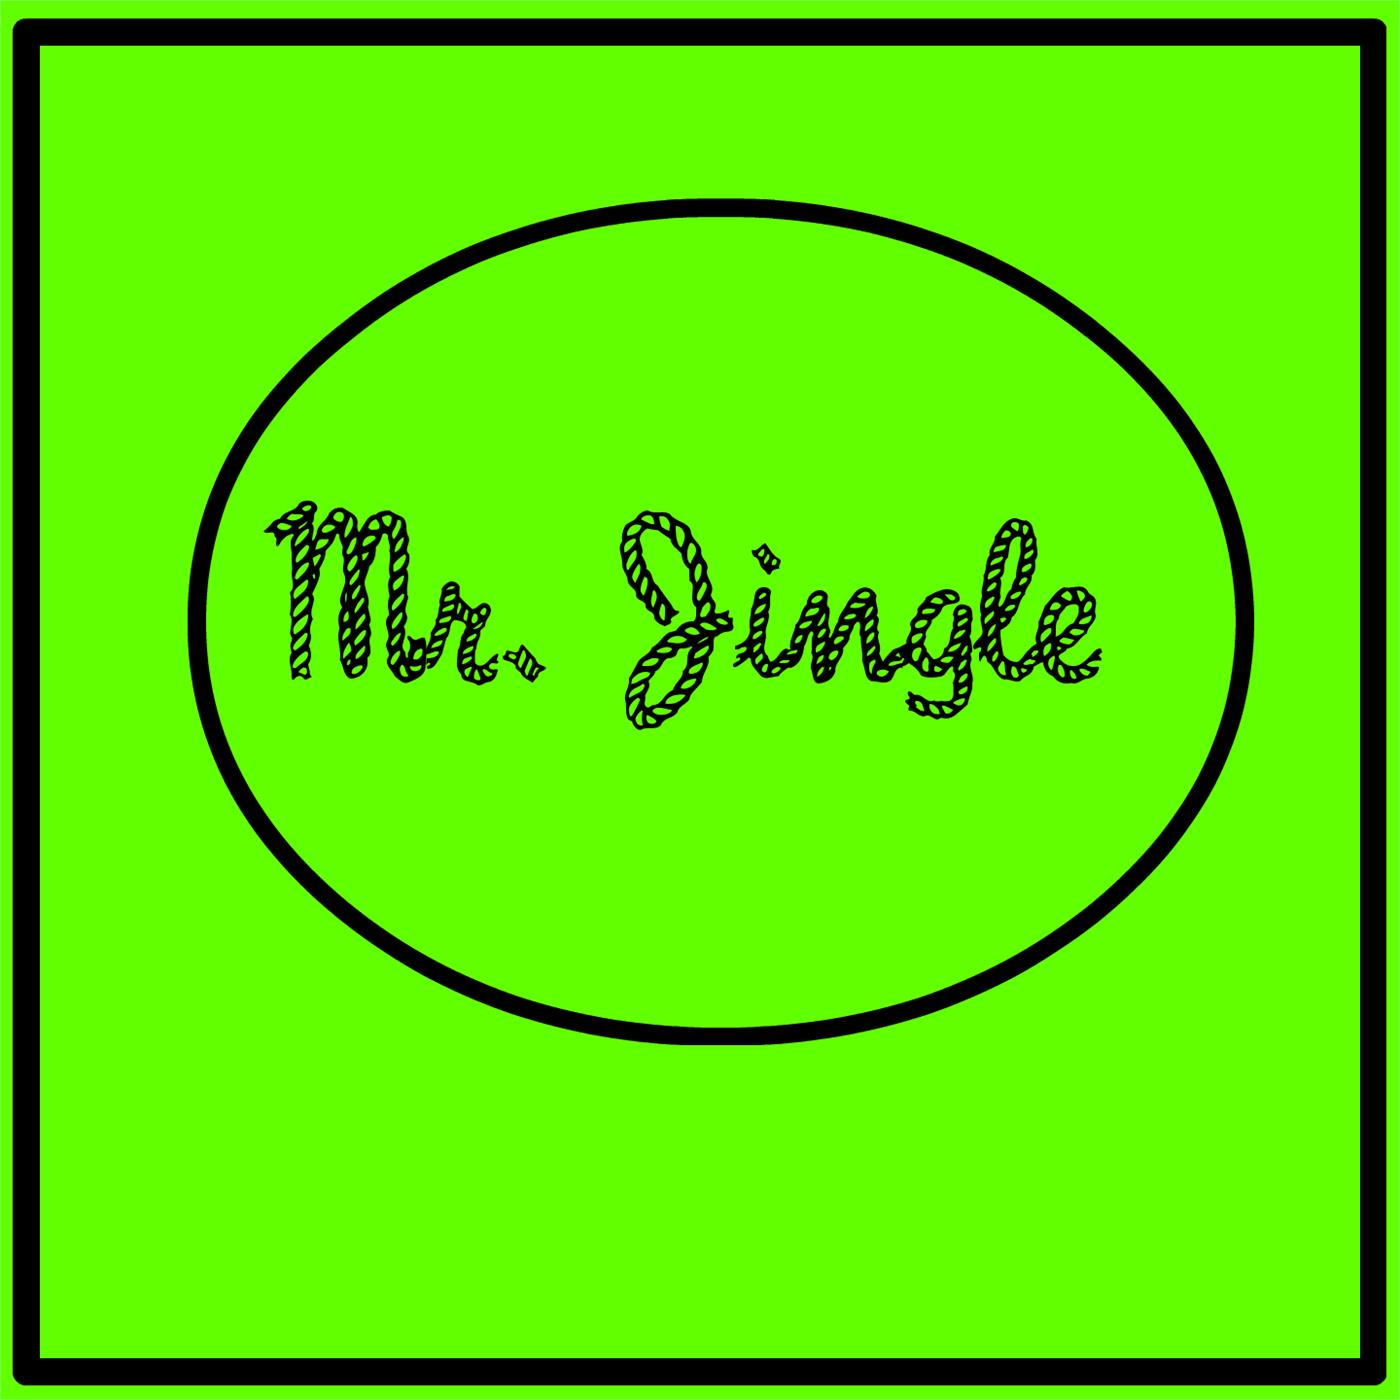 Mr. Jingle